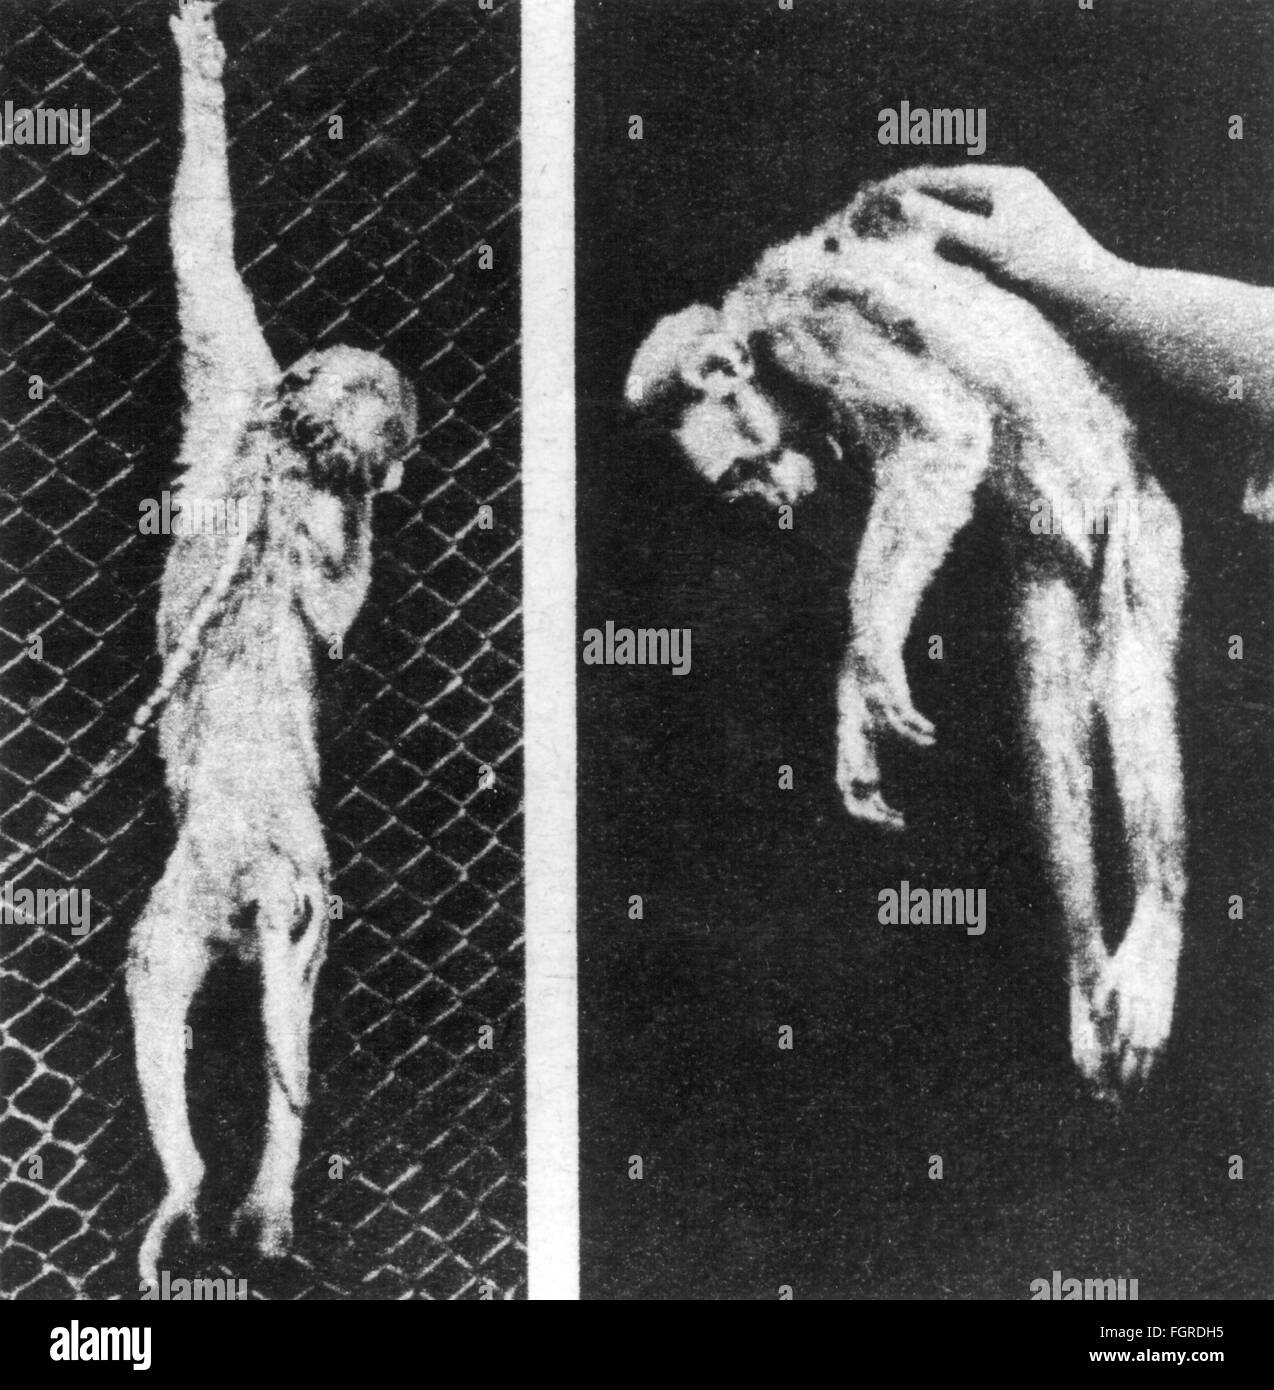 medicine, disease, poliomyelitis, different states of paralysis of the limbs of a gibbon, 20th century, 20th century, - Stock Image